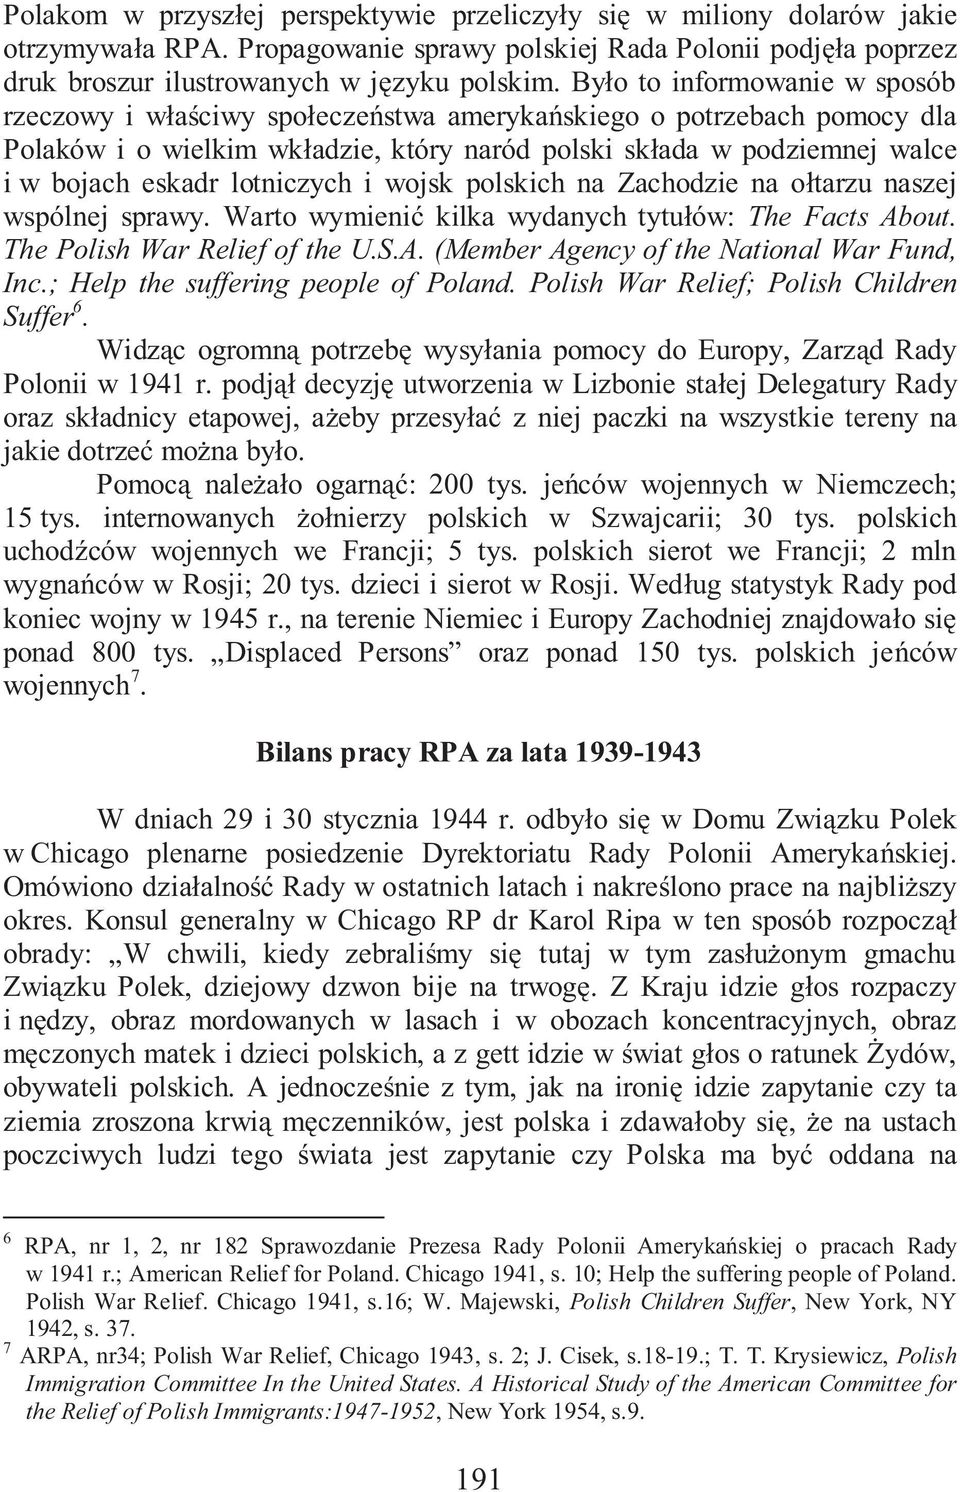 lotniczych i wojsk polskich na Zachodzie na o tarzu naszej wspólnej sprawy. Warto wymieni kilka wydanych tytu ów: The Facts About. The Polish War Relief of the U.S.A. (Member Agency of the National War Fund, Inc.